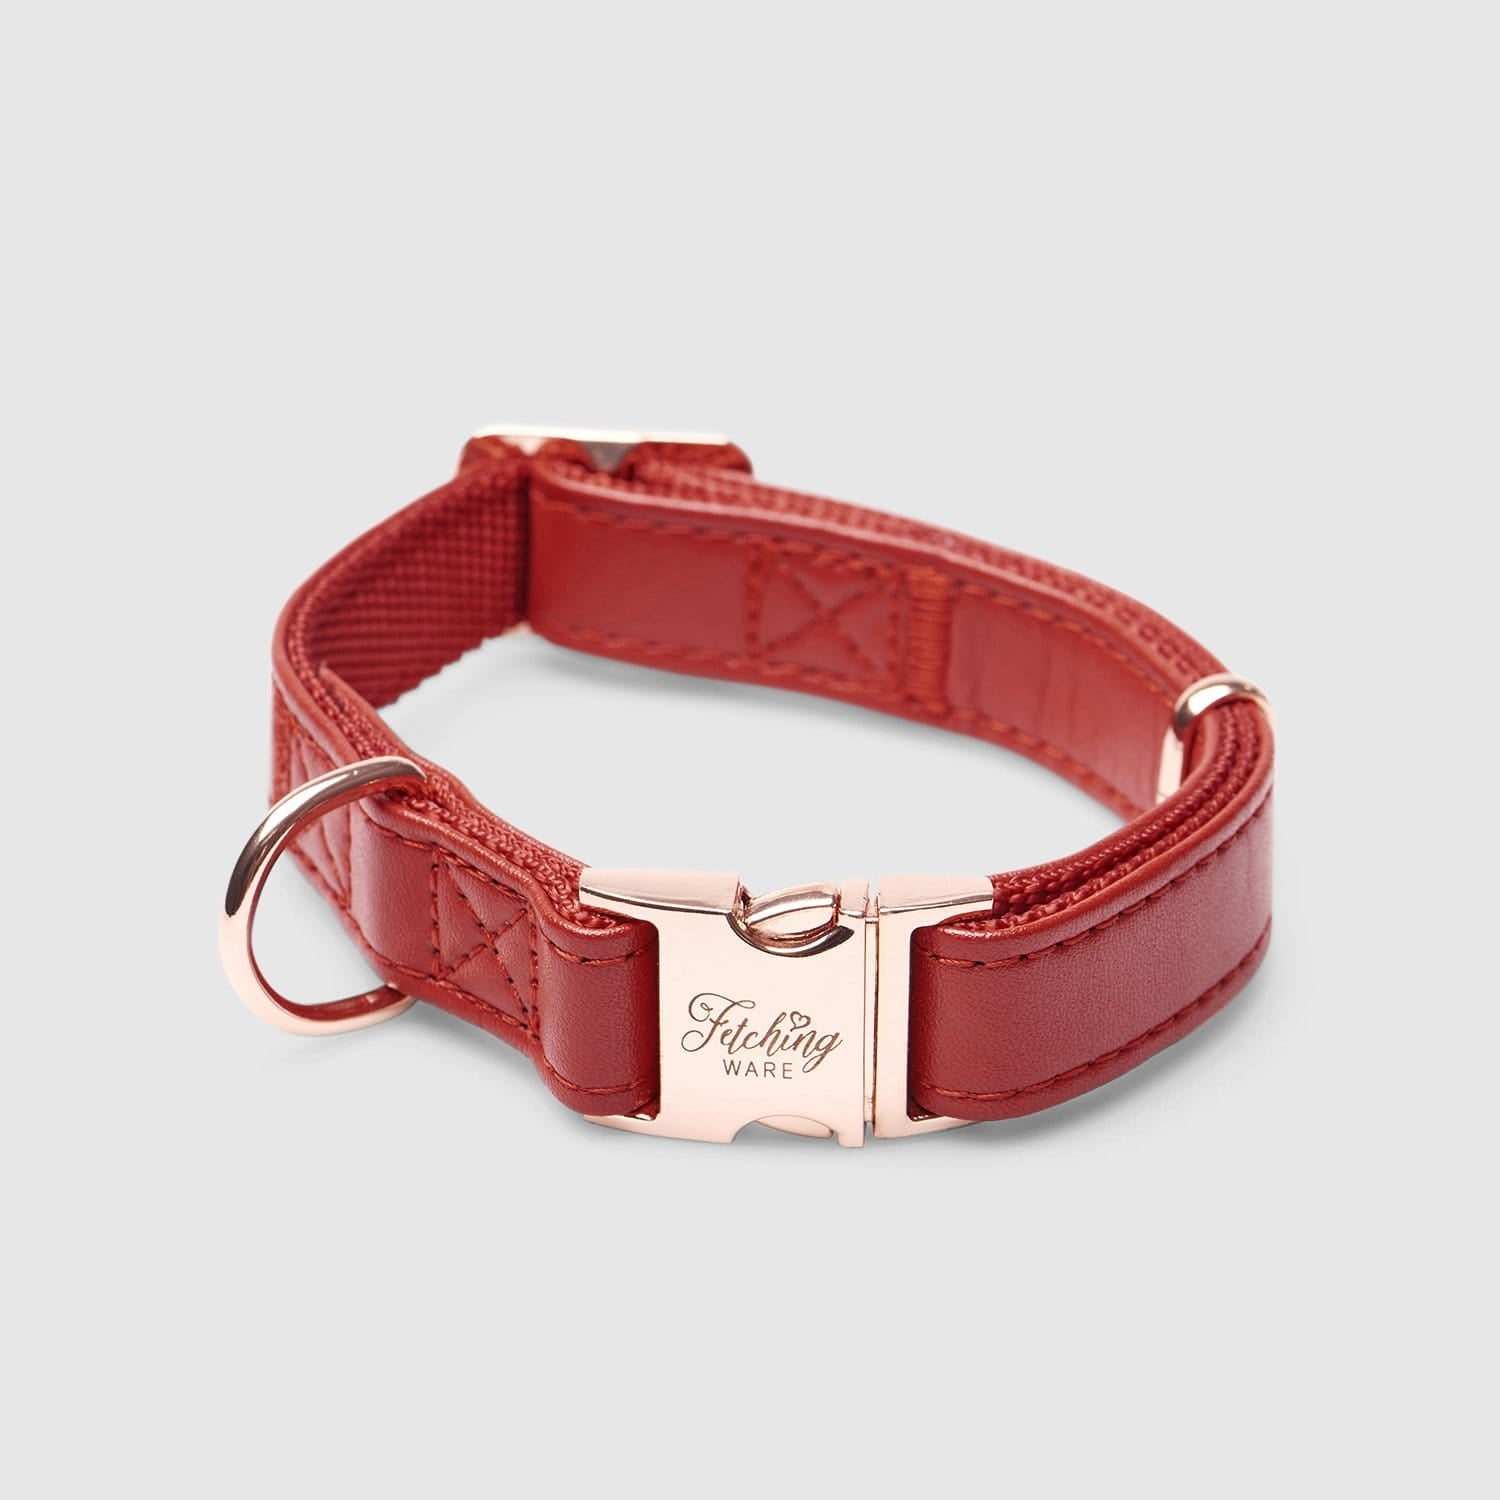 Fetching Ware Tuscany in Rose Gold Collars